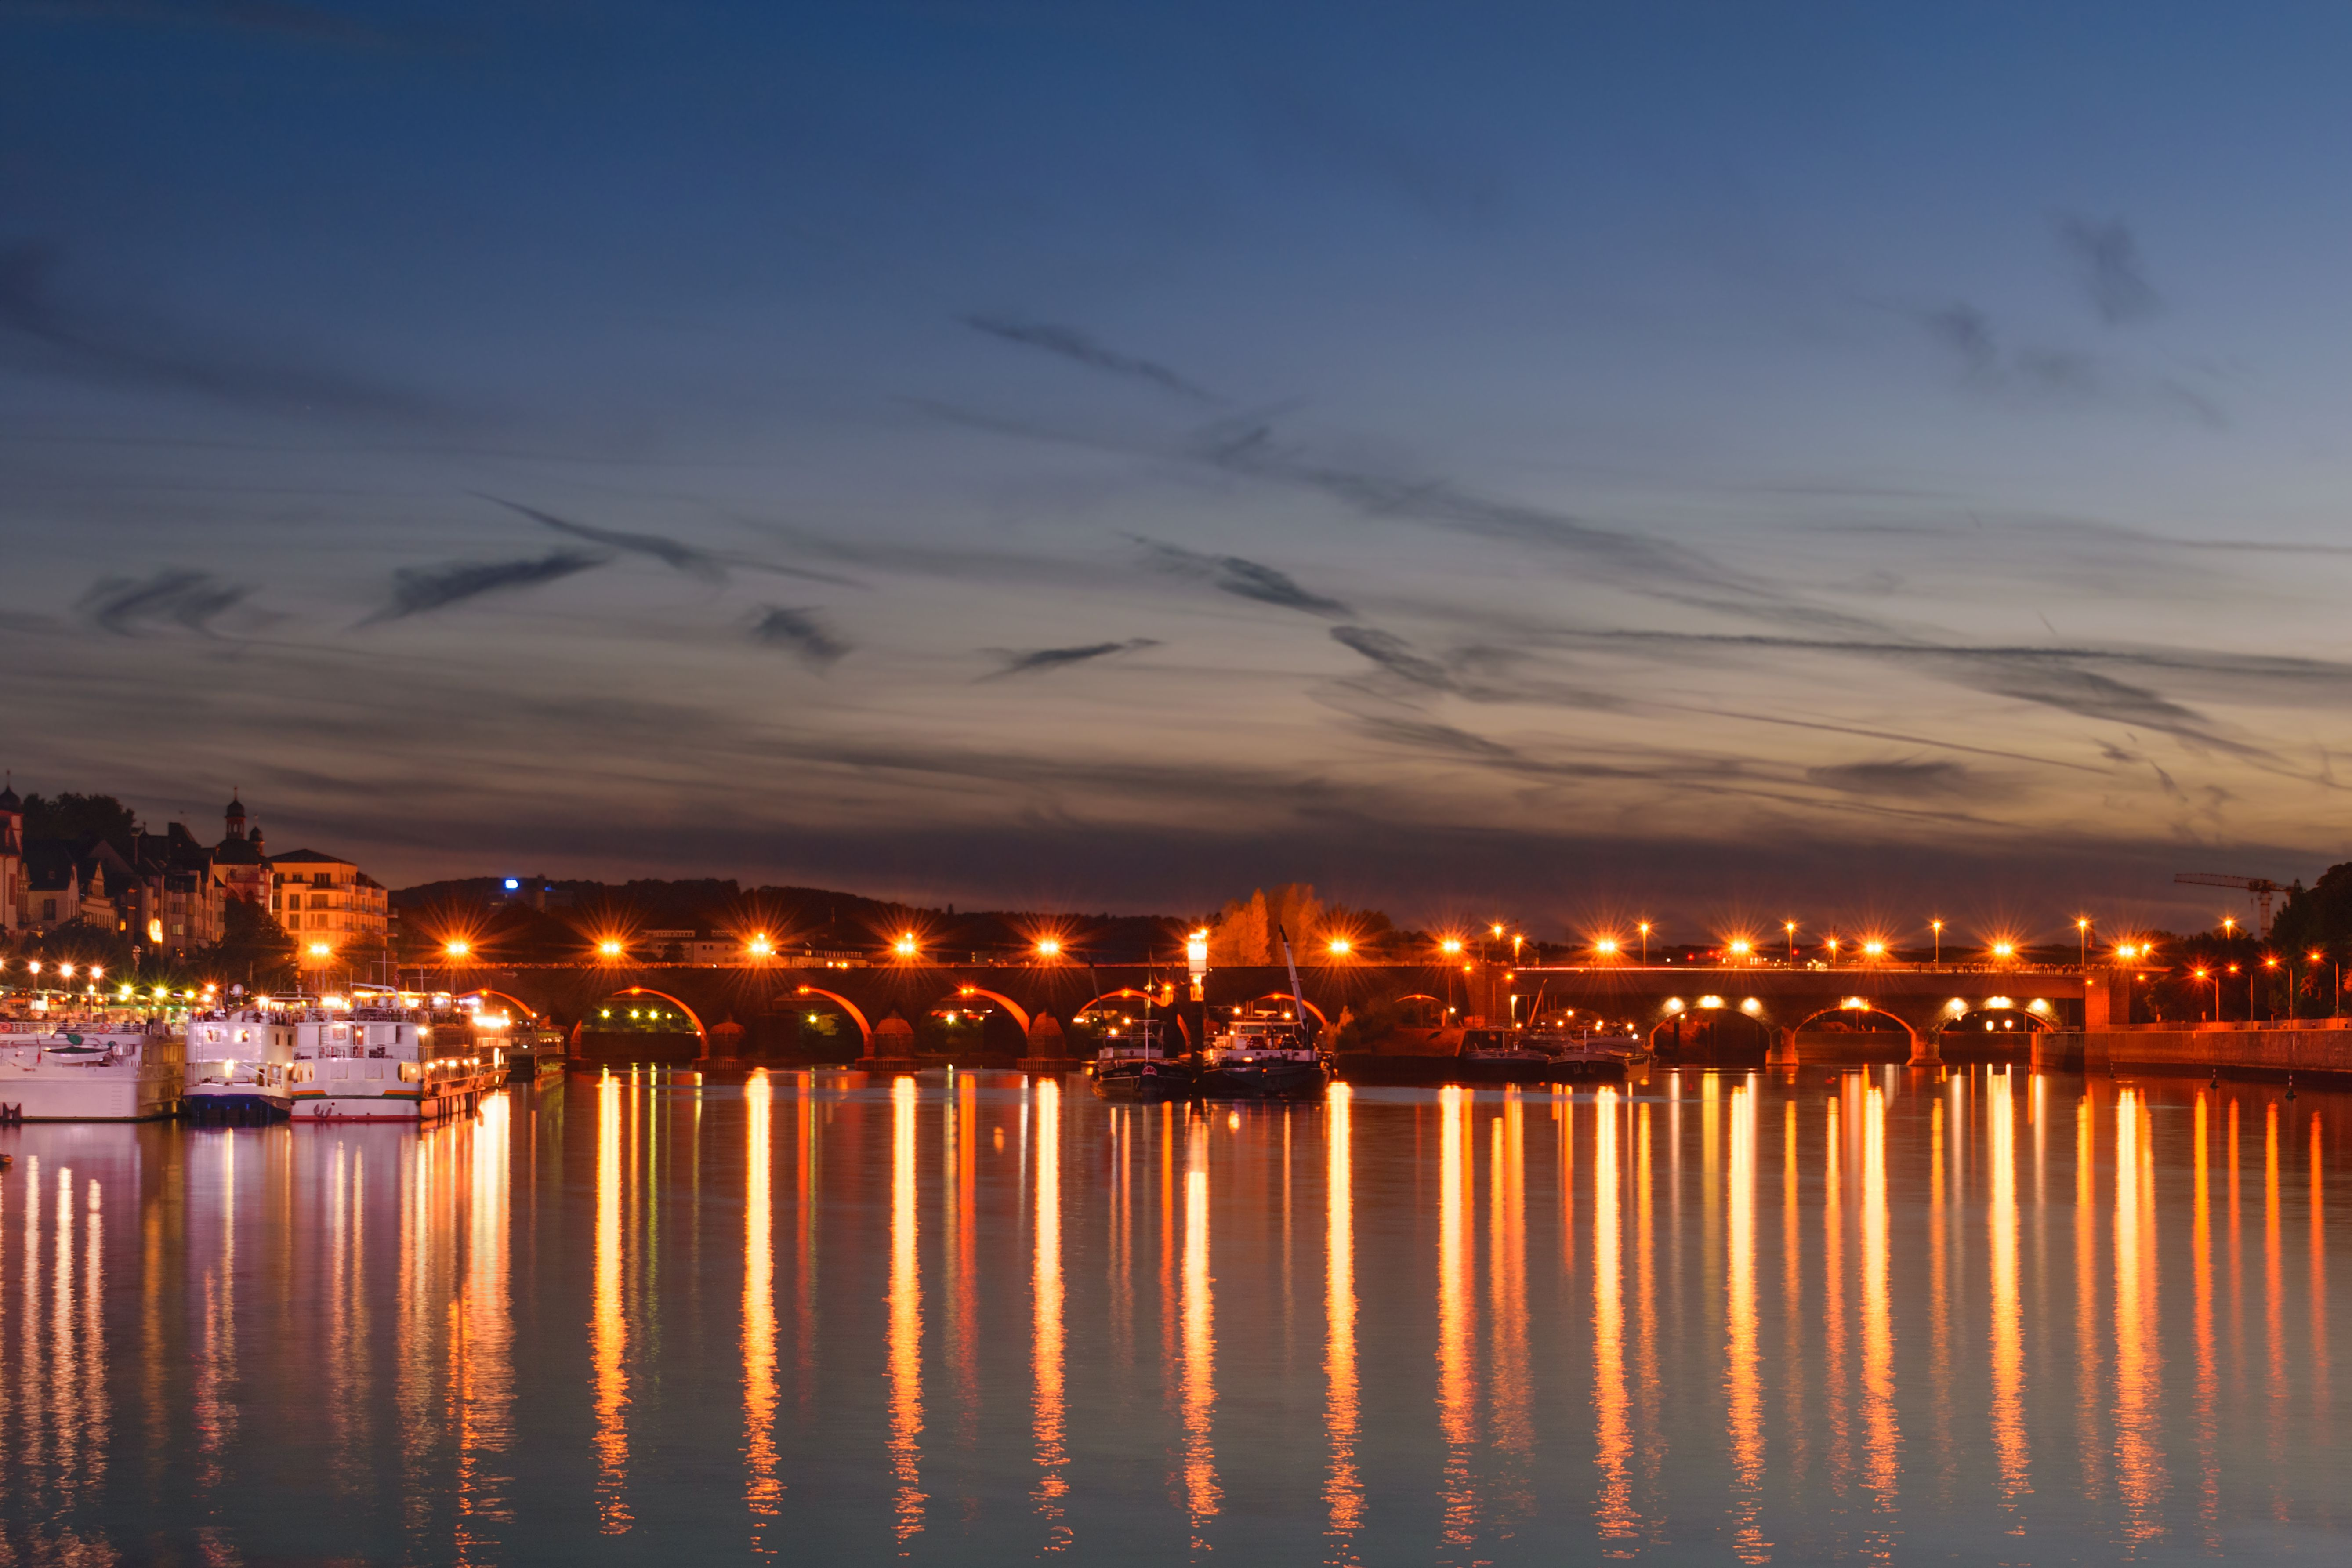 Night view of the Baldwin's bridge during the Rhine in flames festival